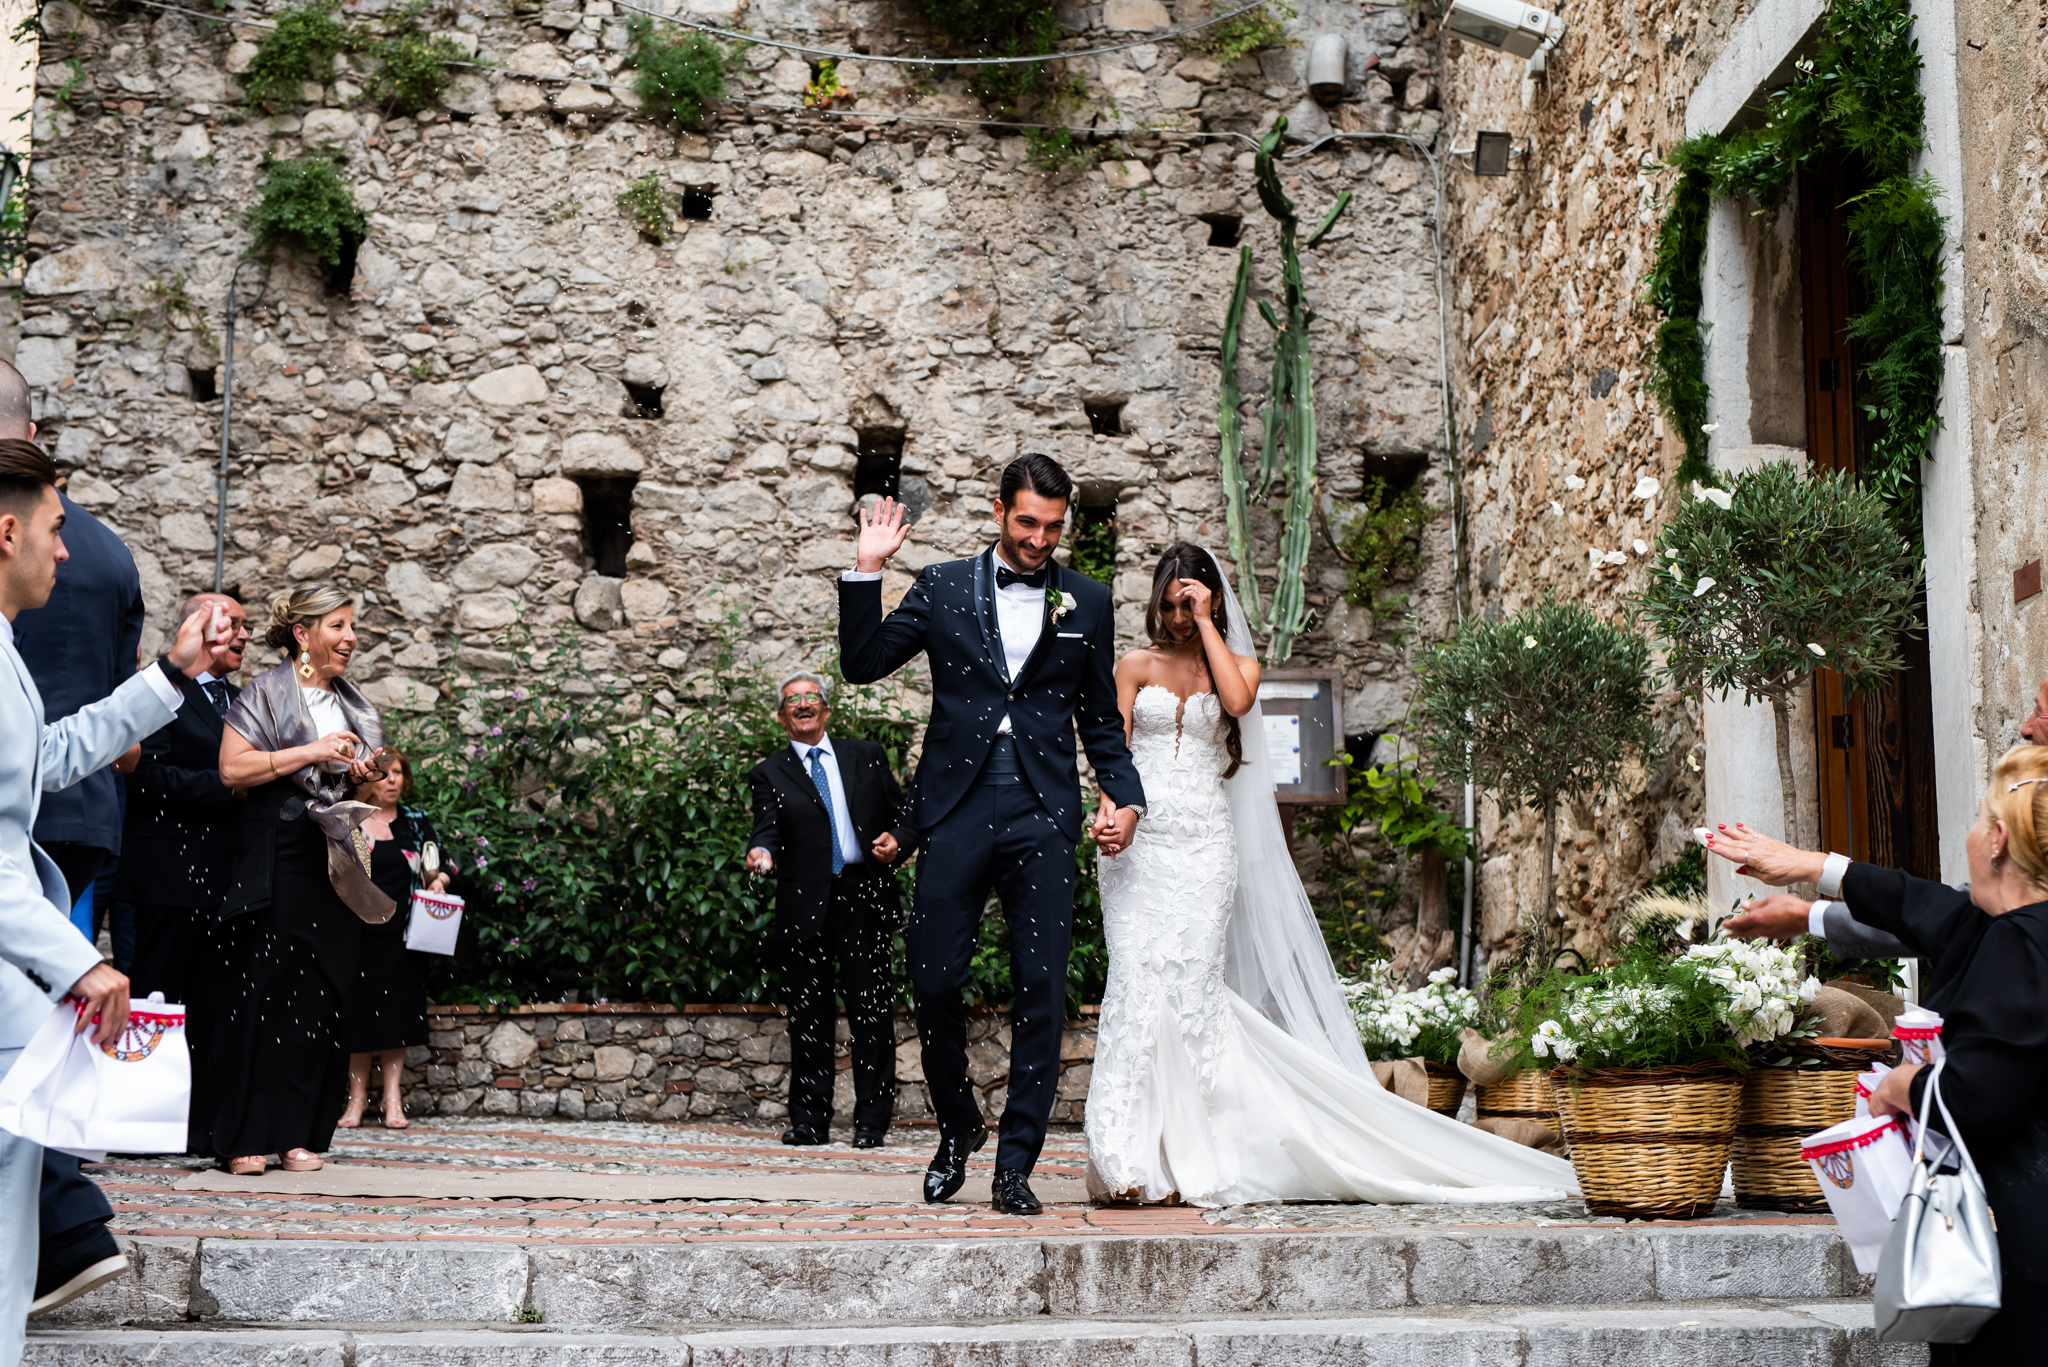 Best-wedding-photographer-in-Sicily-28.jpg